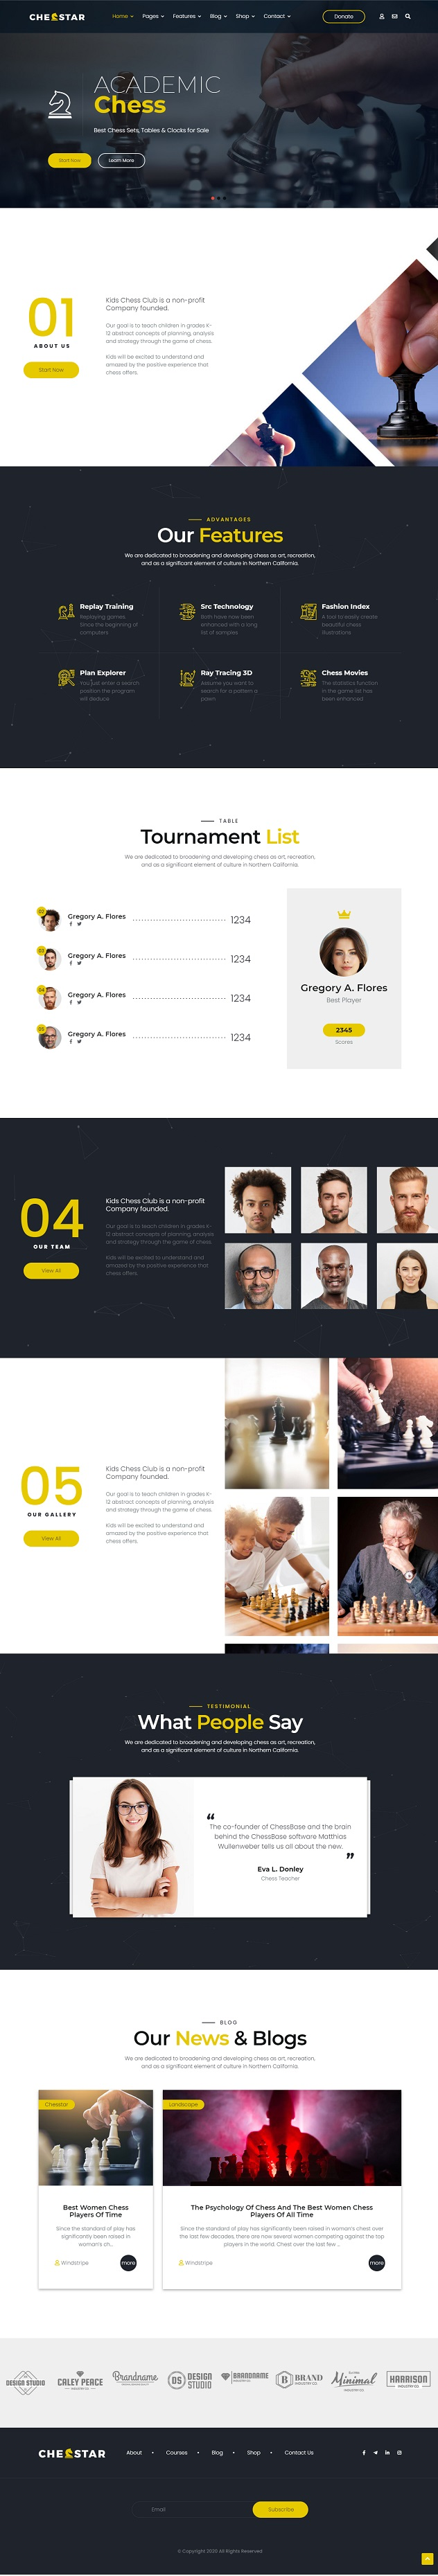 Chesstar - Chess Club and Personal Trainer Joomla Template - 1